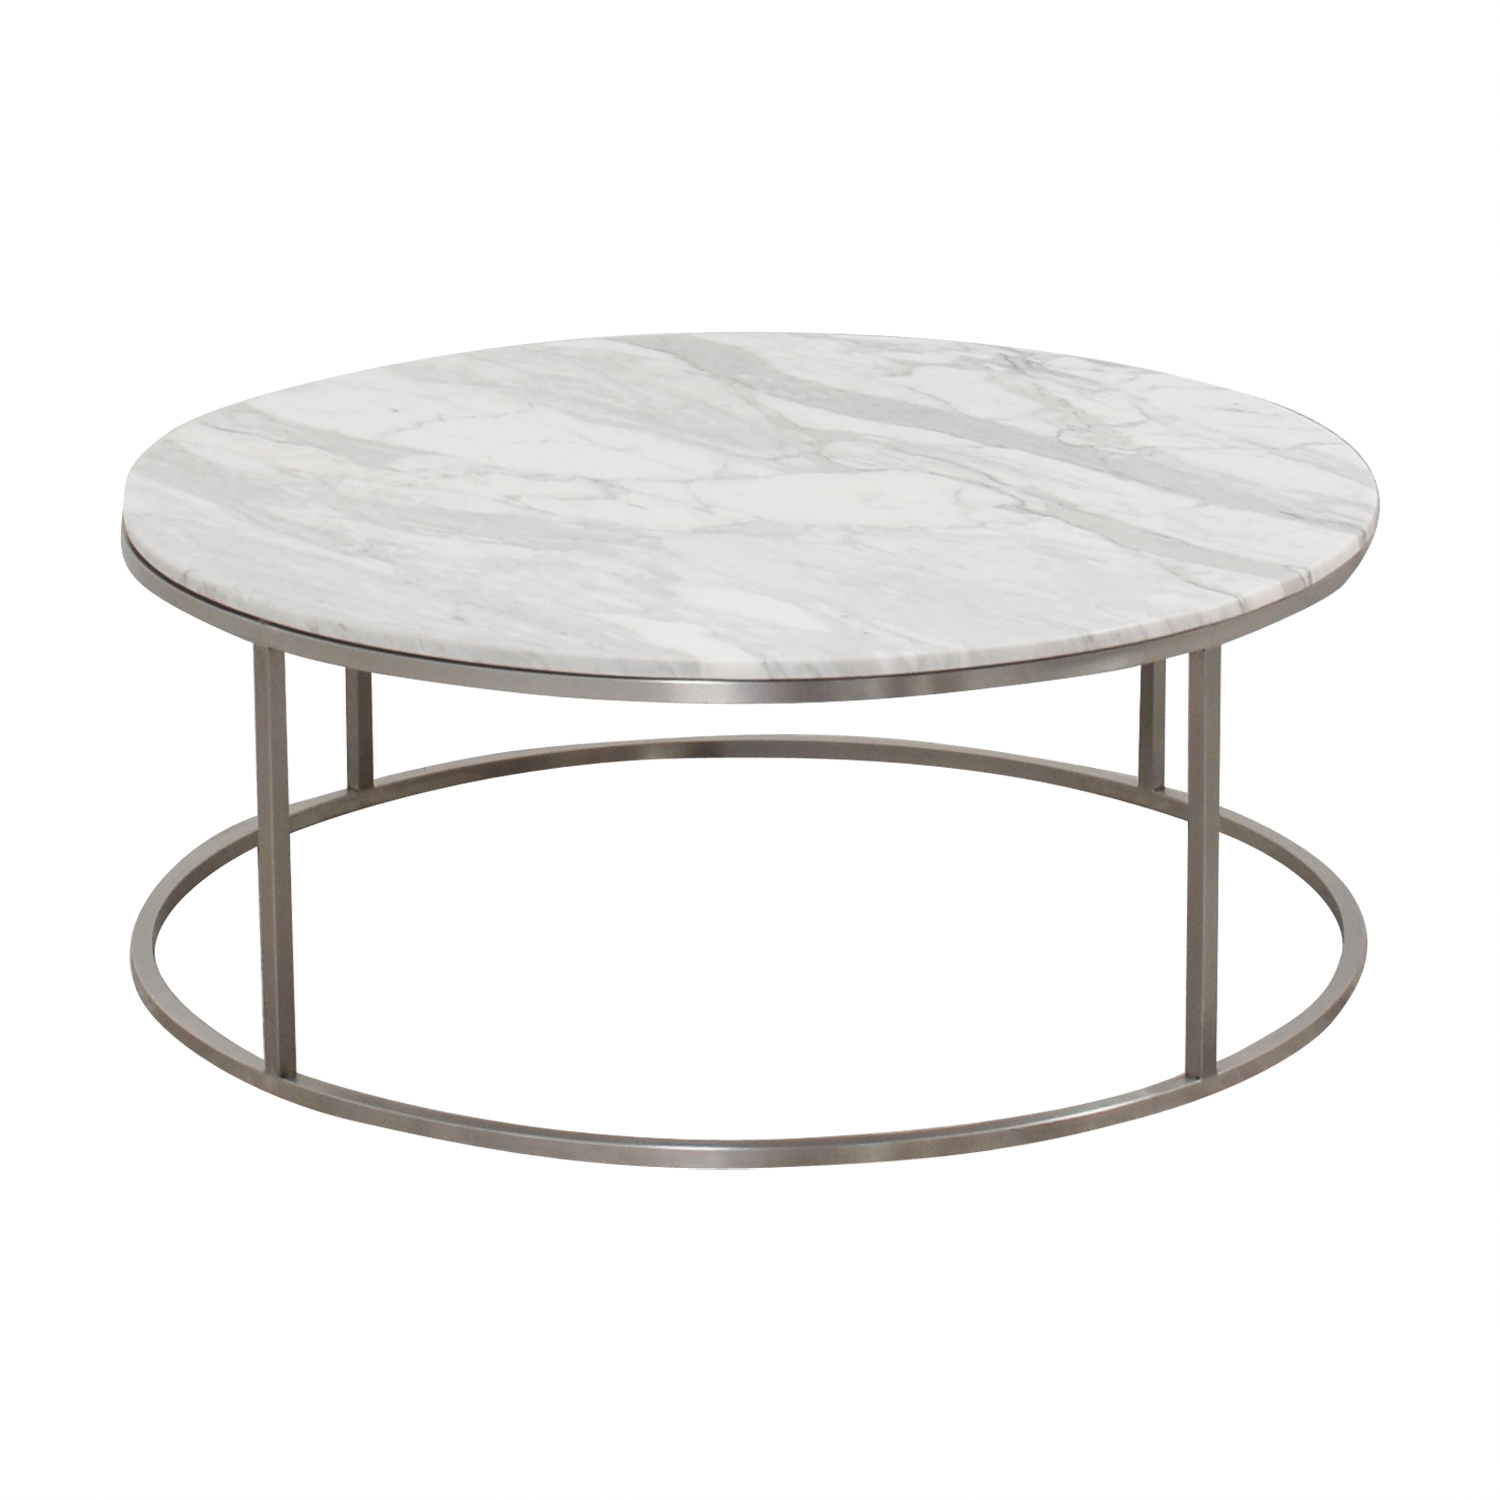 Design Within Reach Marble Round Coffee Table sale